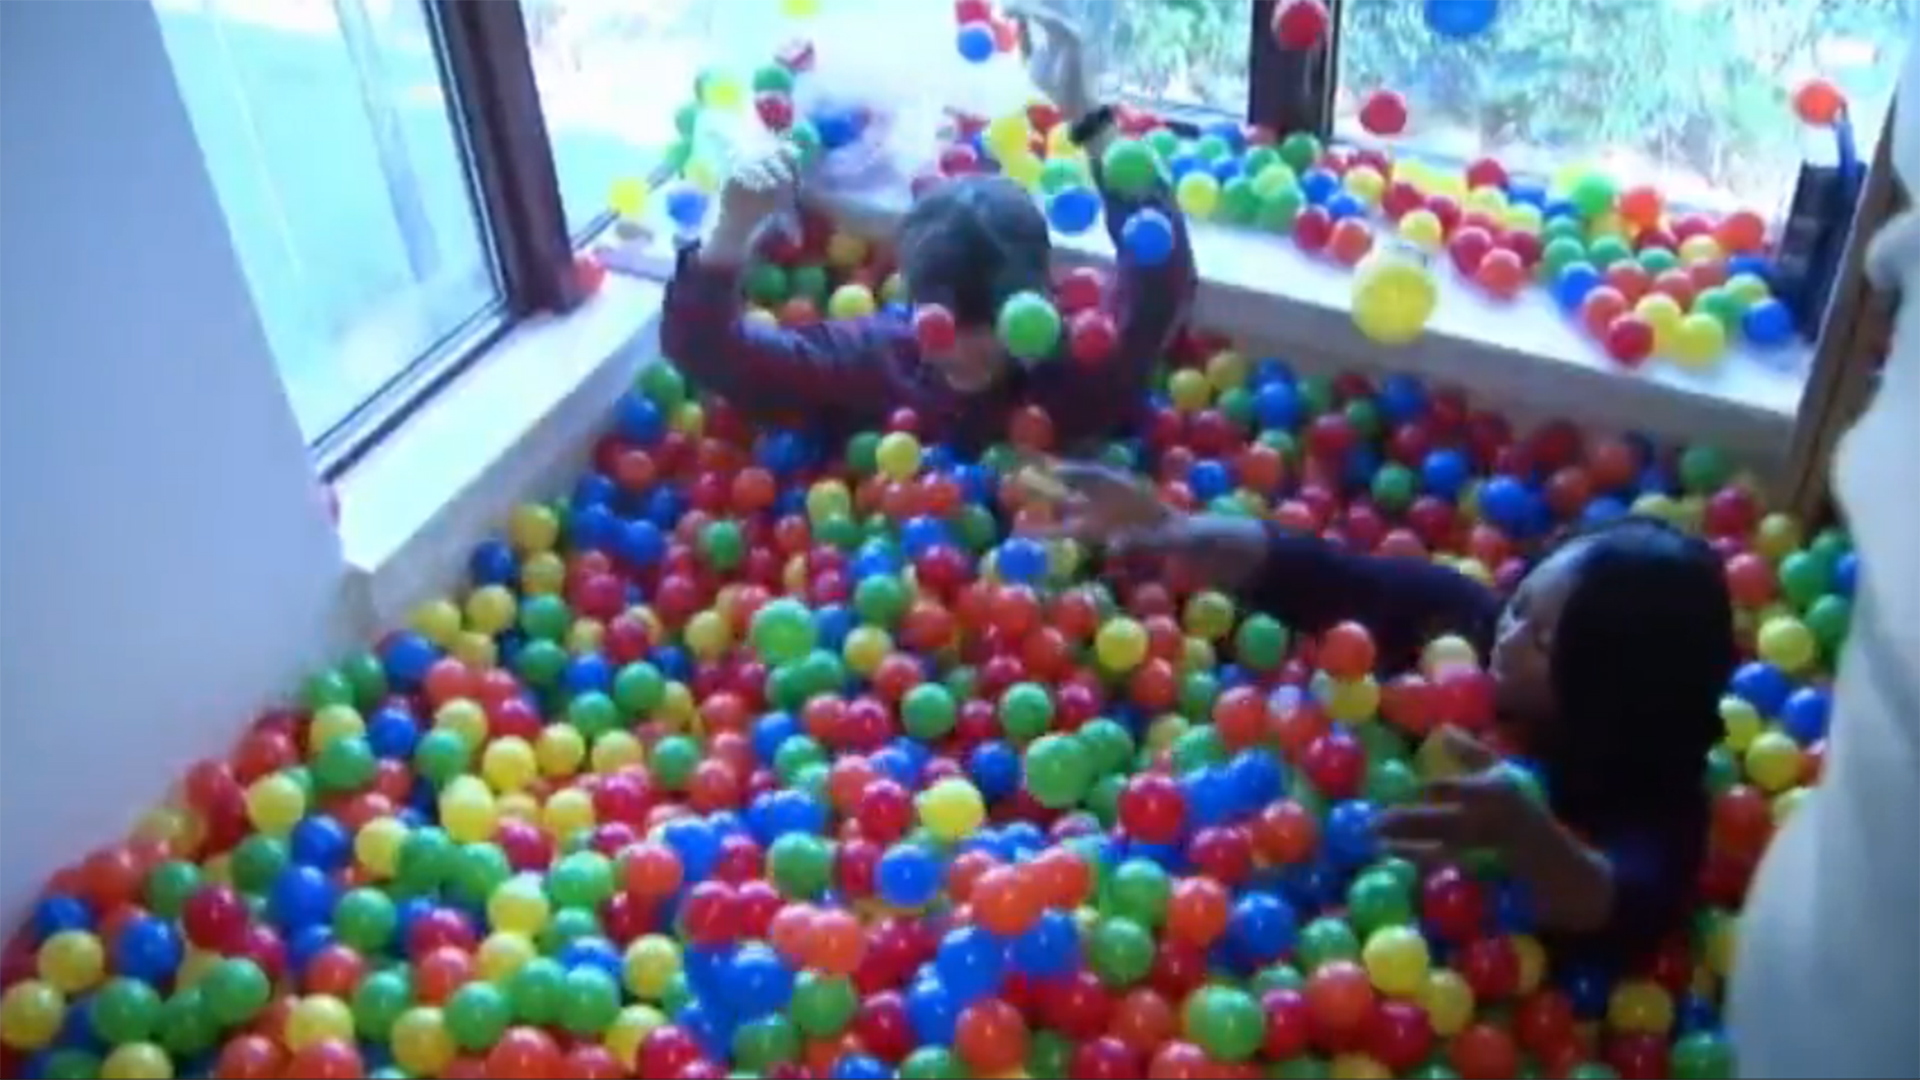 College Student Transforms Dorm Room Into Ball Pit  NBC News